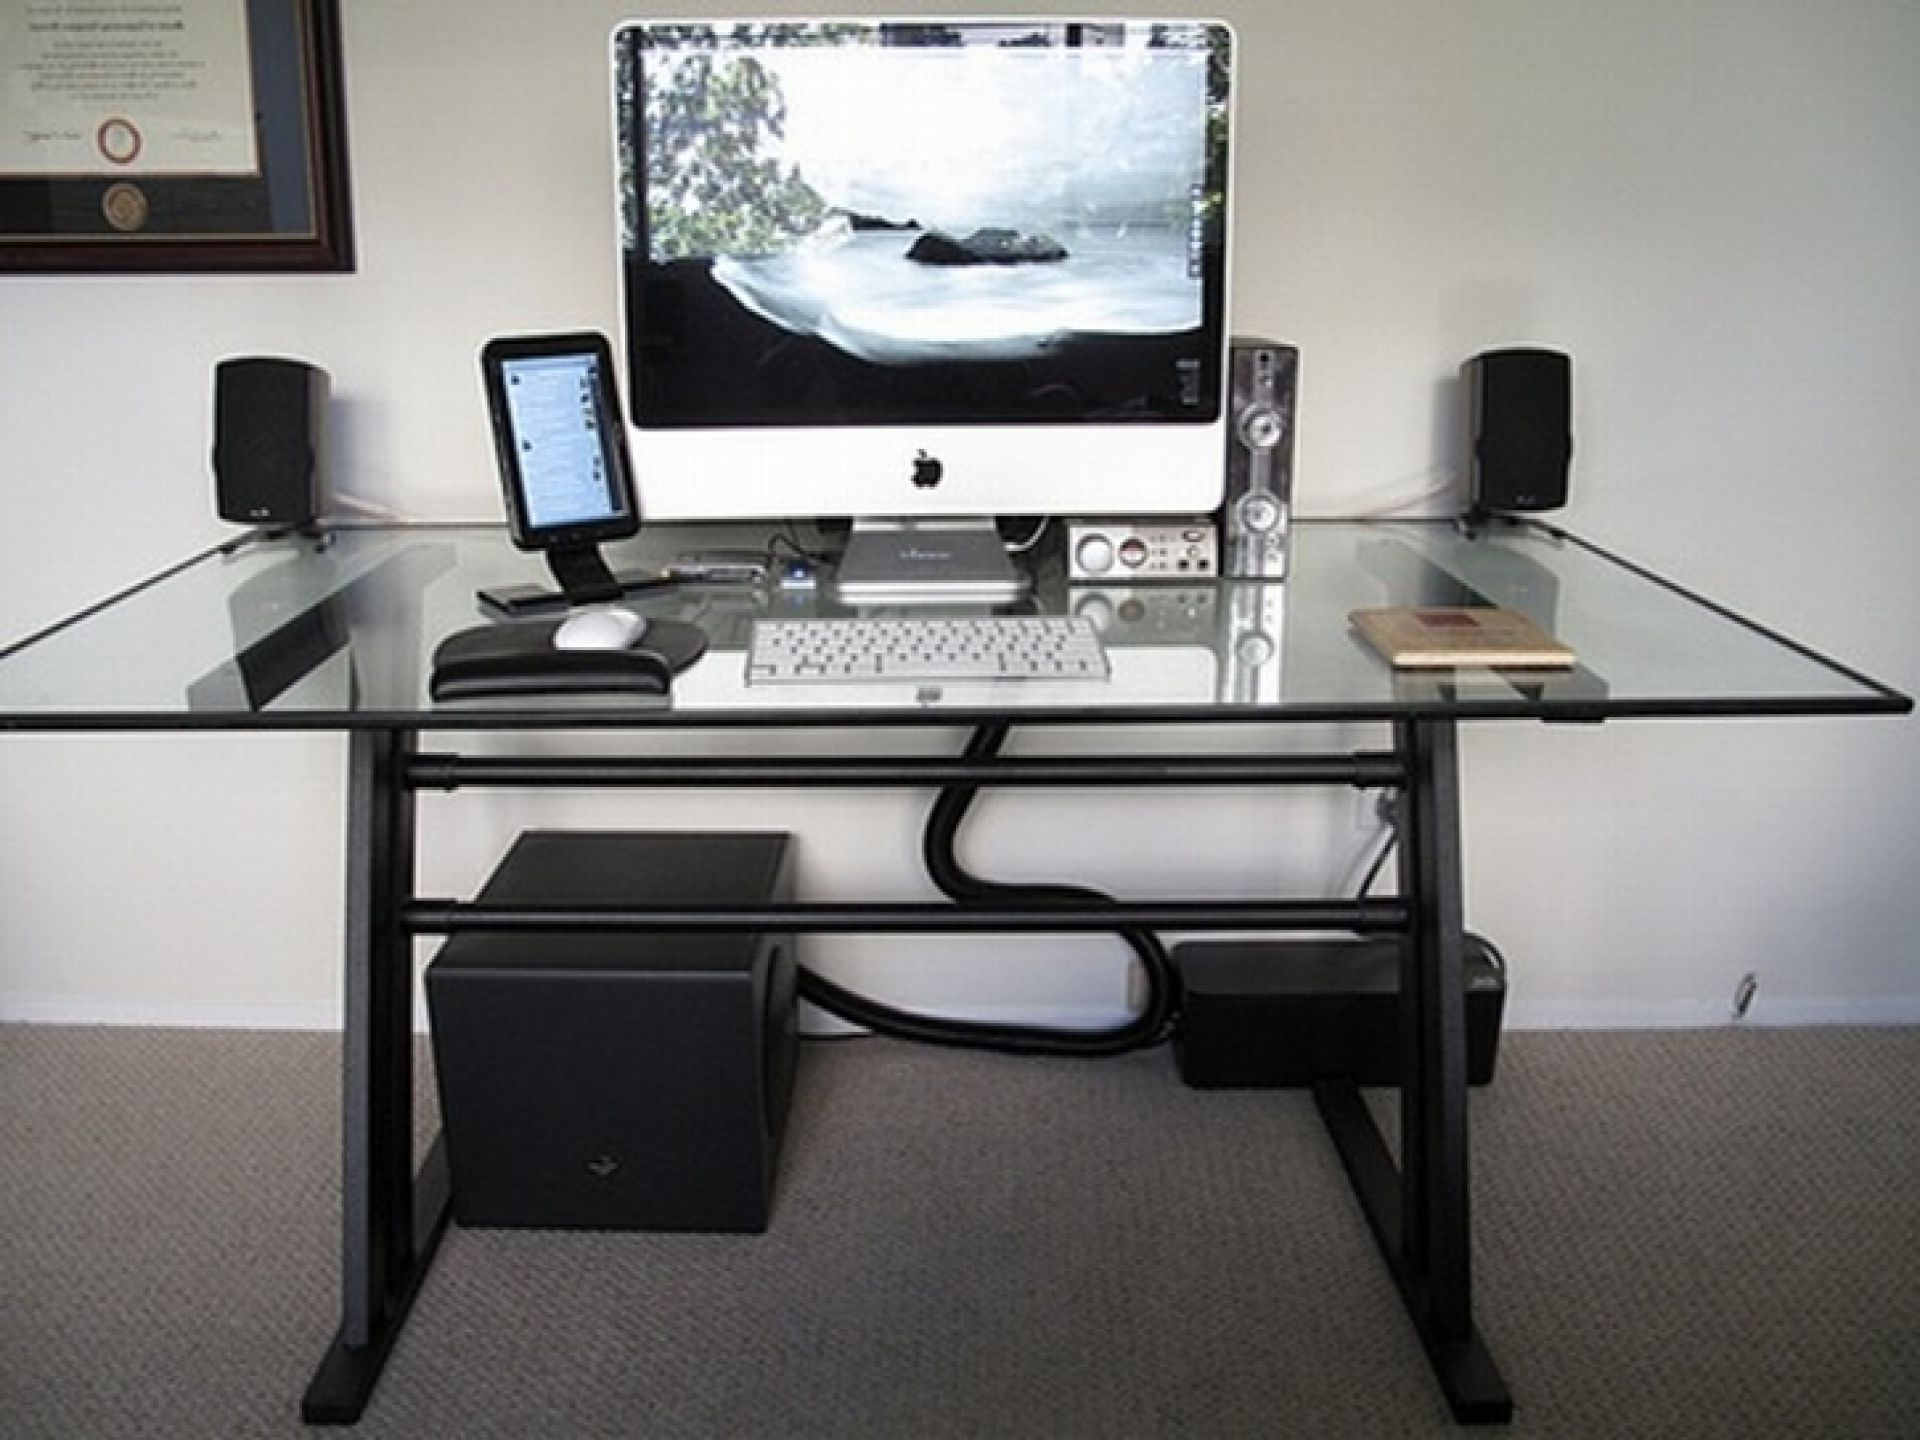 Well Known Modern Computer Desk With Glass Top And Black Legs On Grey Carpet Within Modern Computer Desks (View 19 of 20)